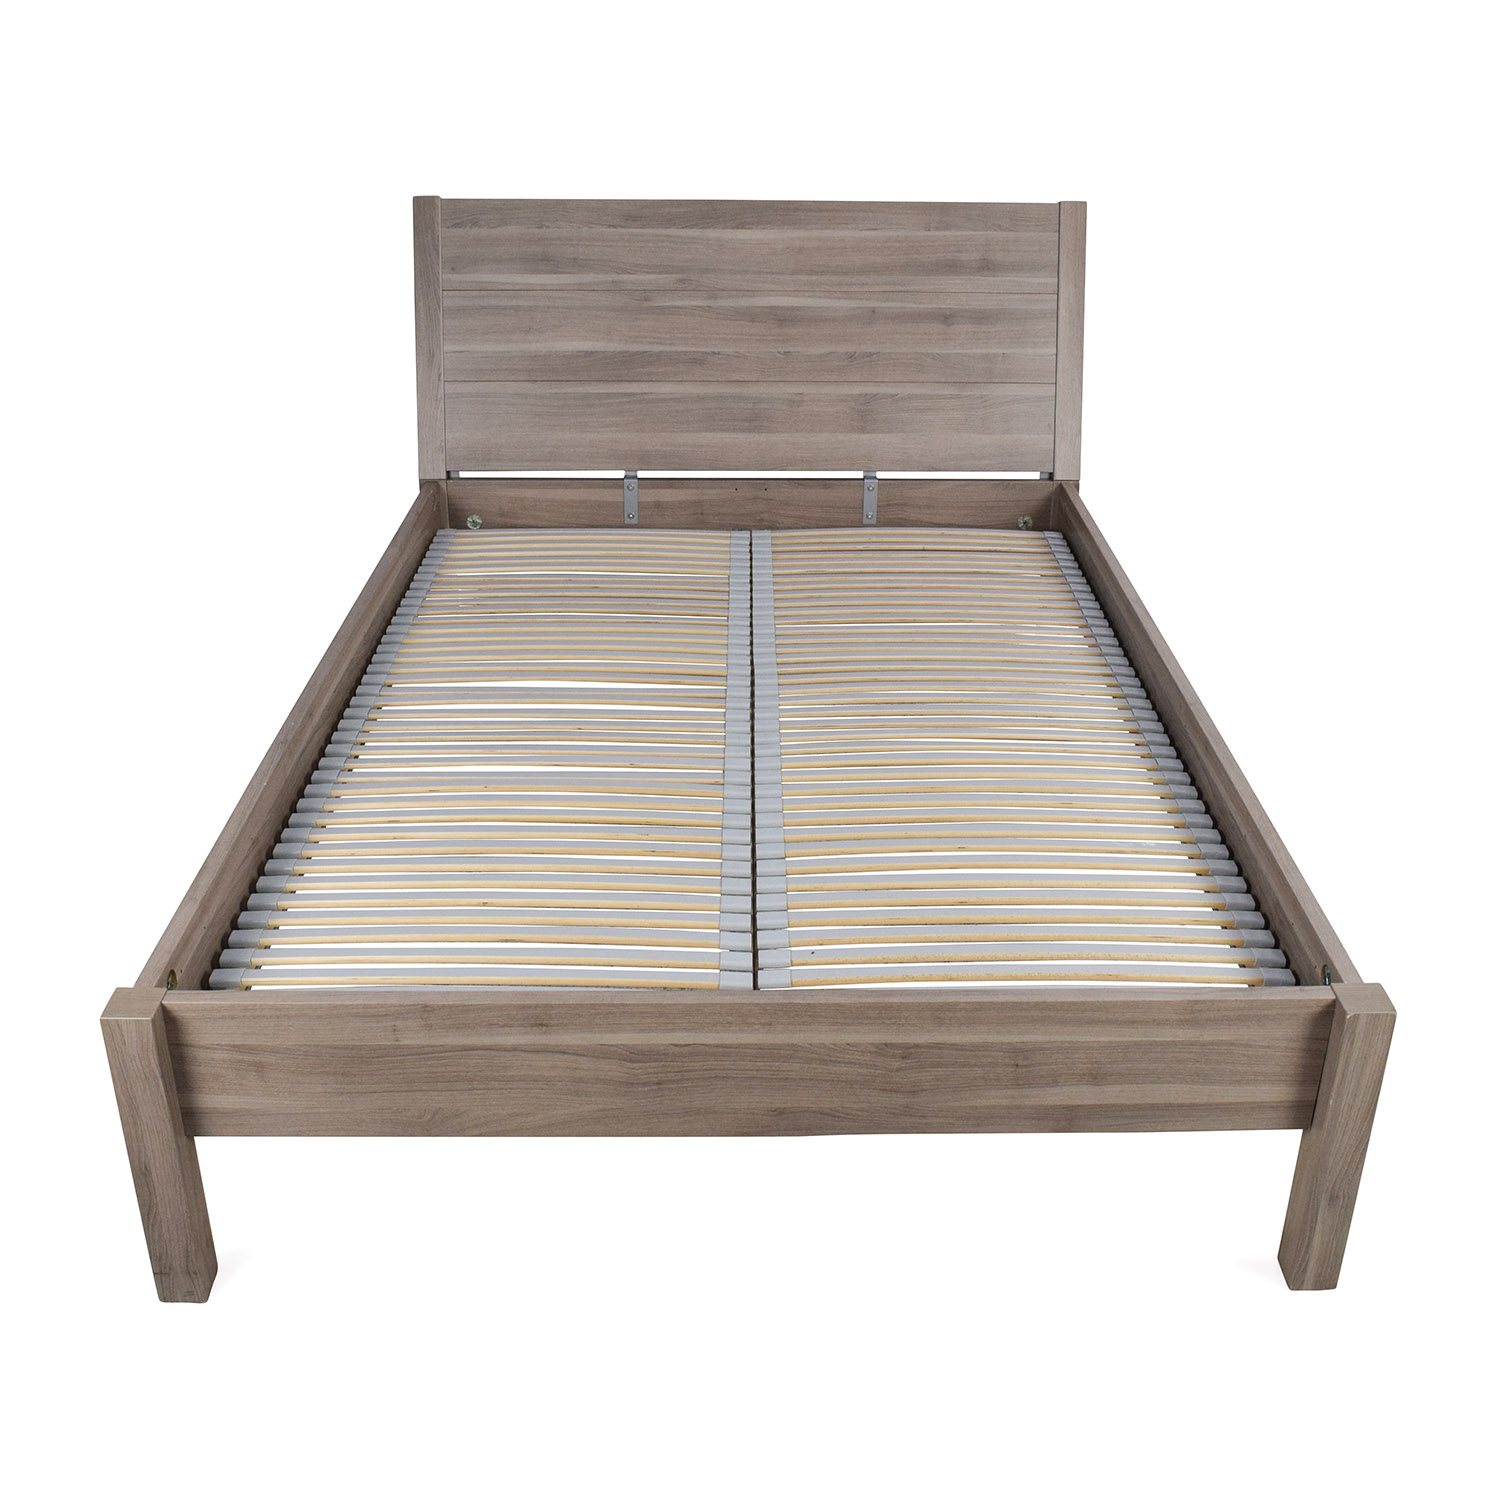 Ikea Full Size Pewter Bed Frame Dimensions